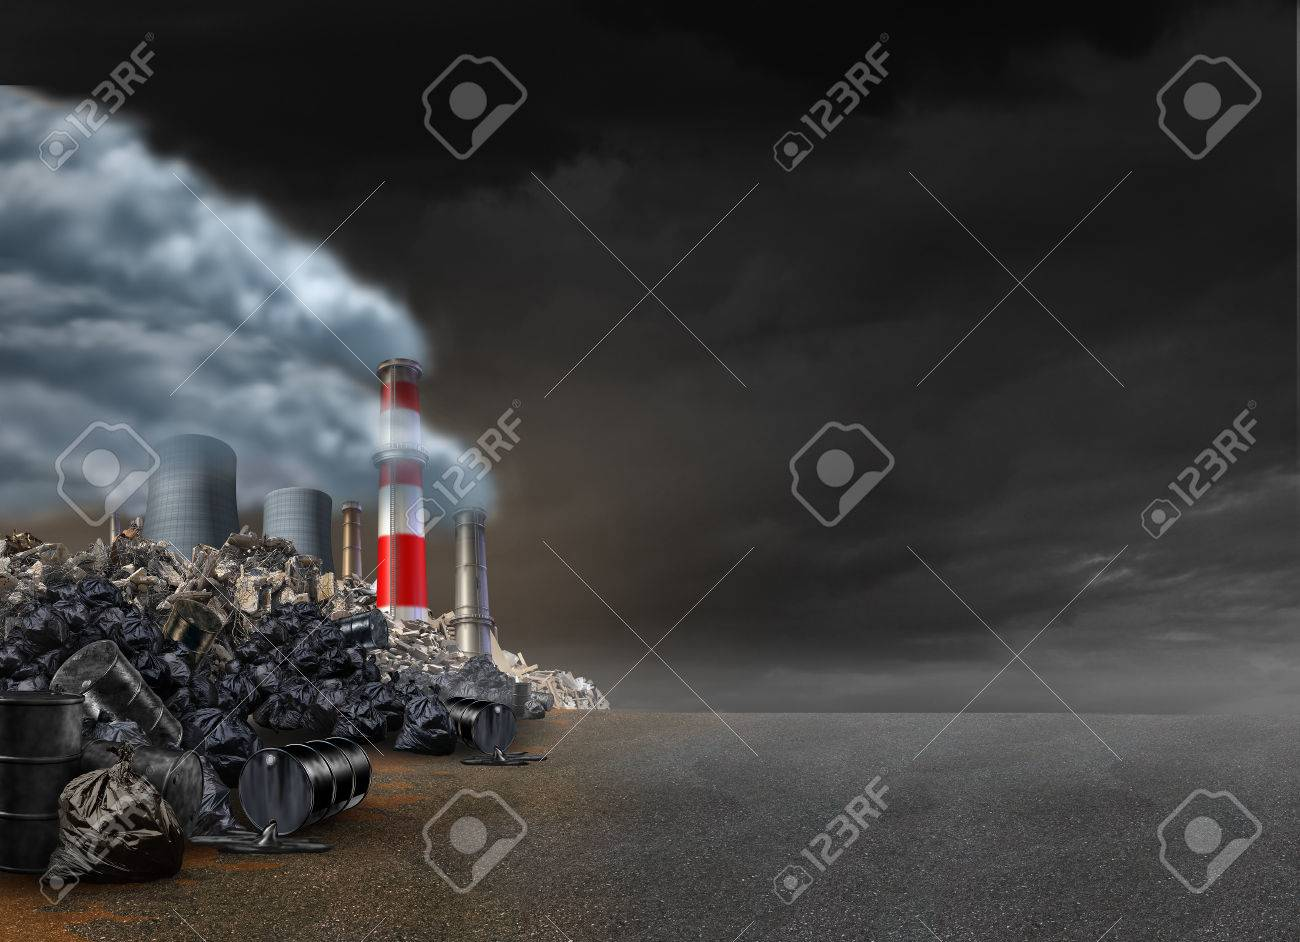 Pollution Background And Power Plant Emitting Polluted Air With 1300x942